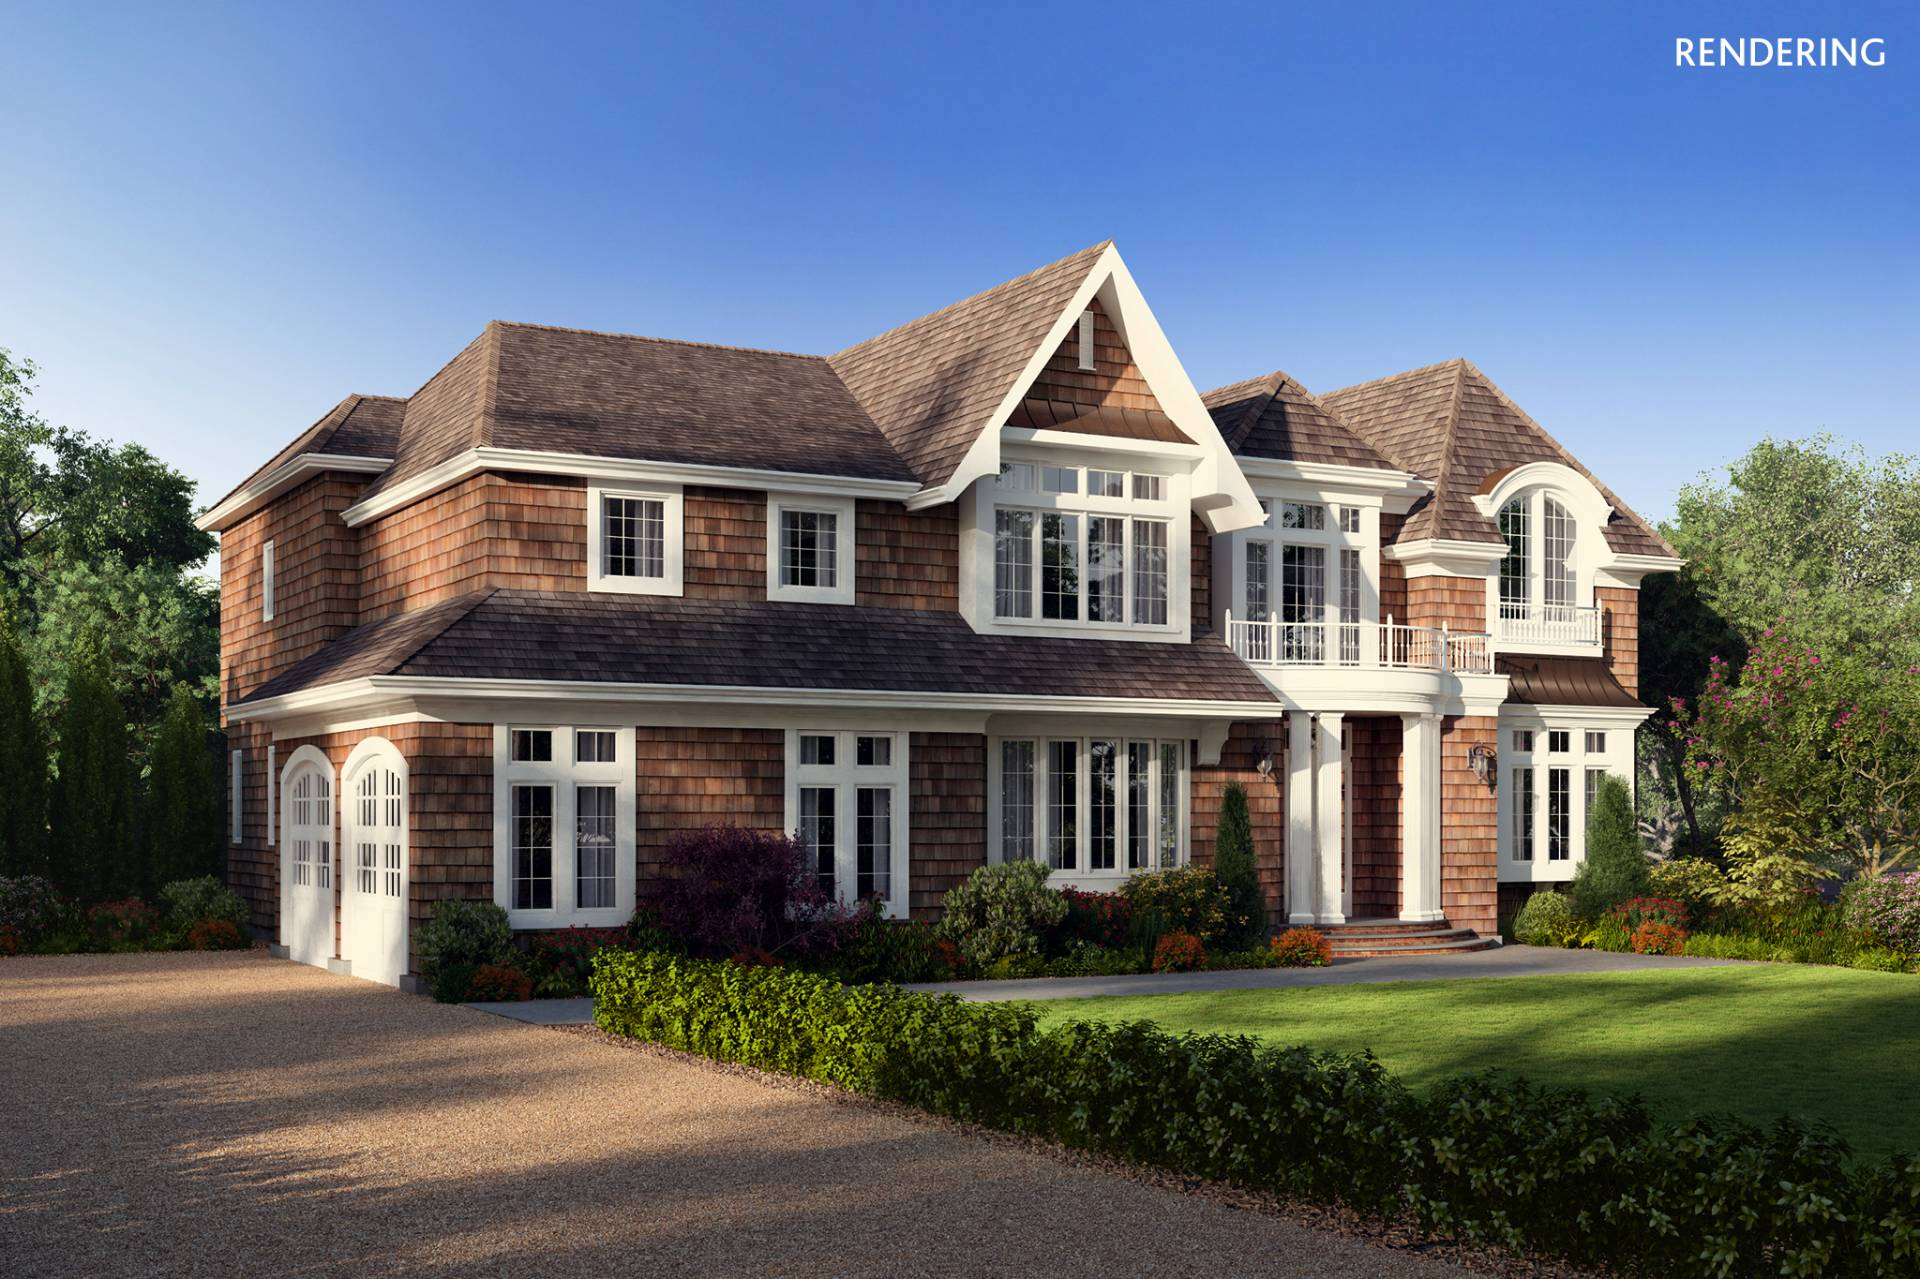 Single Family Home for Sale at The Manor At Bridgehampton's Barn & Vine. 87 Birchwood Lane (Lot 18, Manor), Bridgehampton, New York